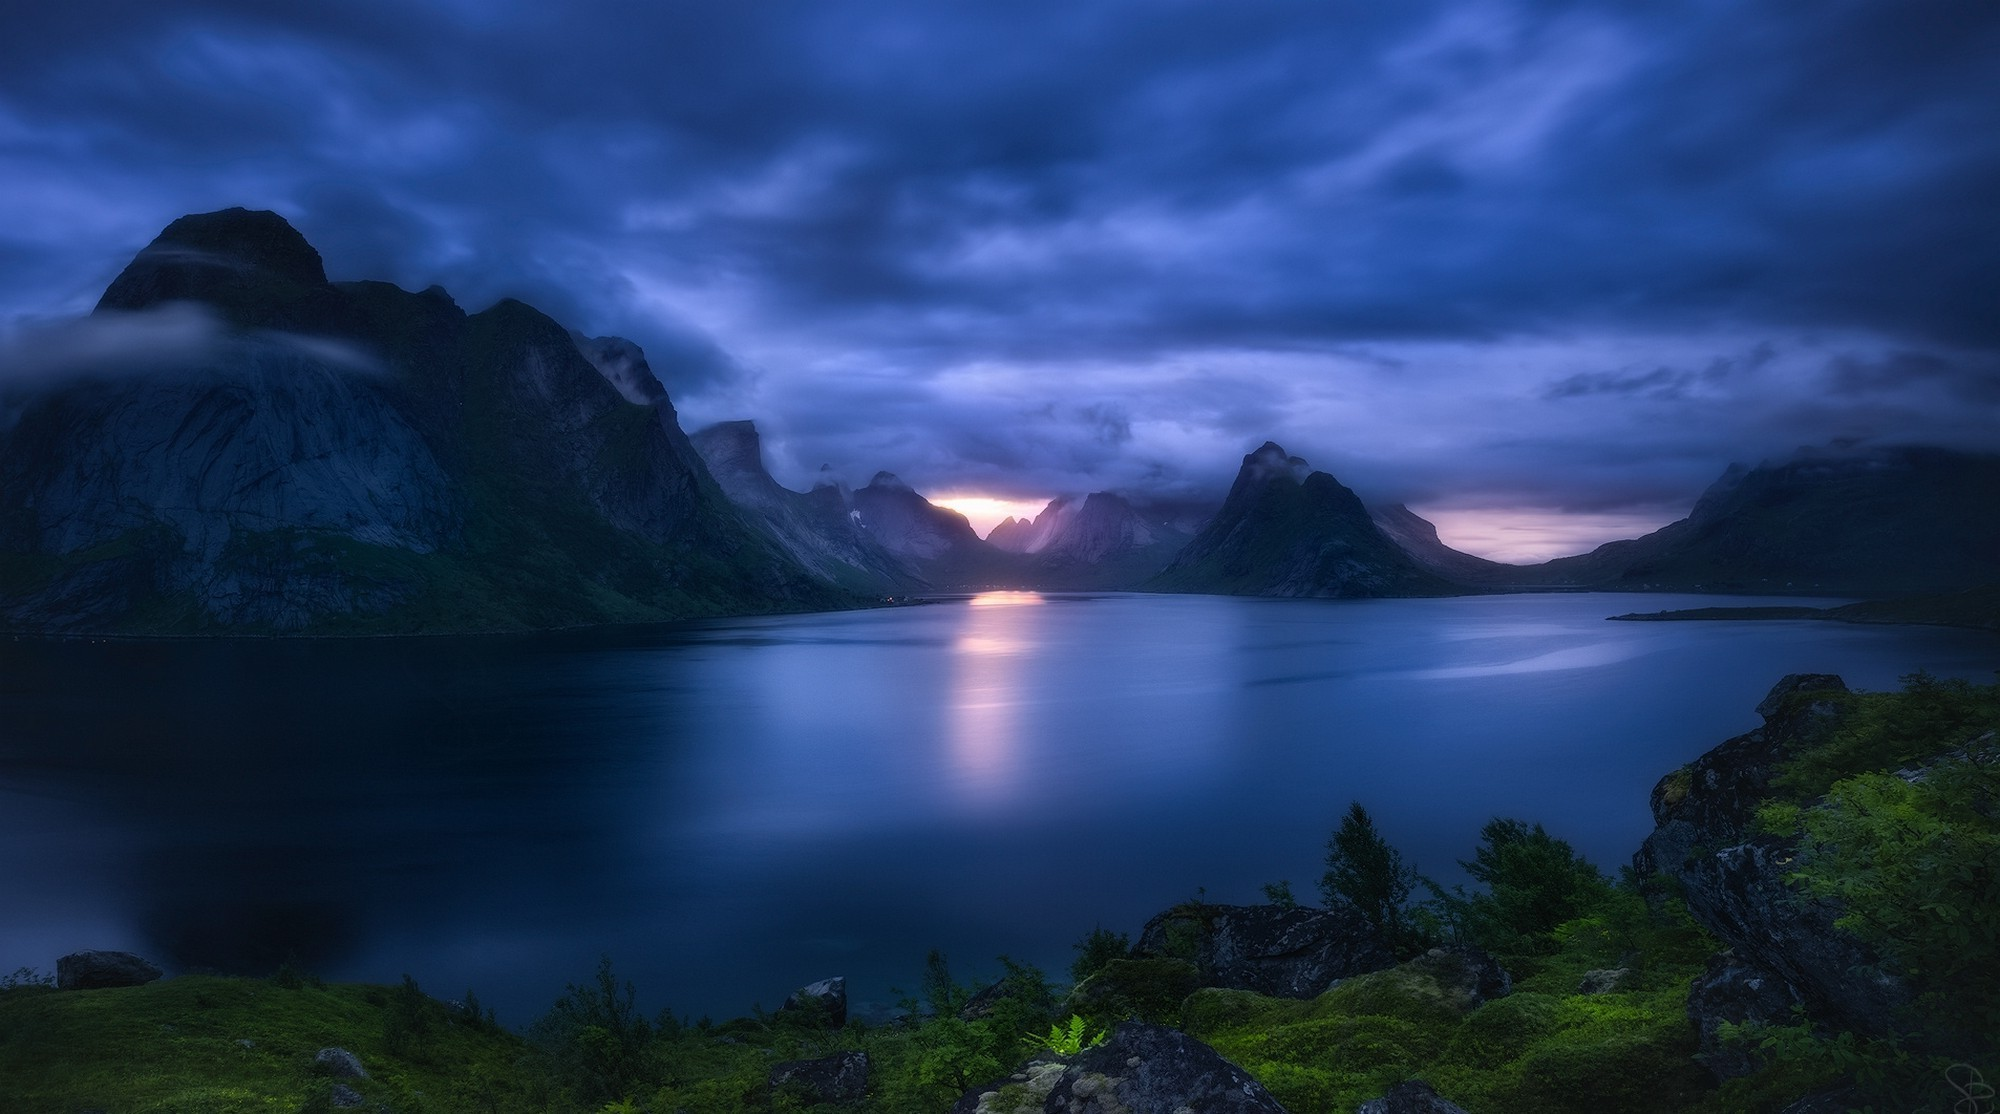 2000x1114 nature, Landscape, Sunset, Dark, Clouds, Mountain, Lake, Grass, Shrubs,  Blue, Norway, Lofoten Wallpapers HD / Desktop and Mobile Backgrounds